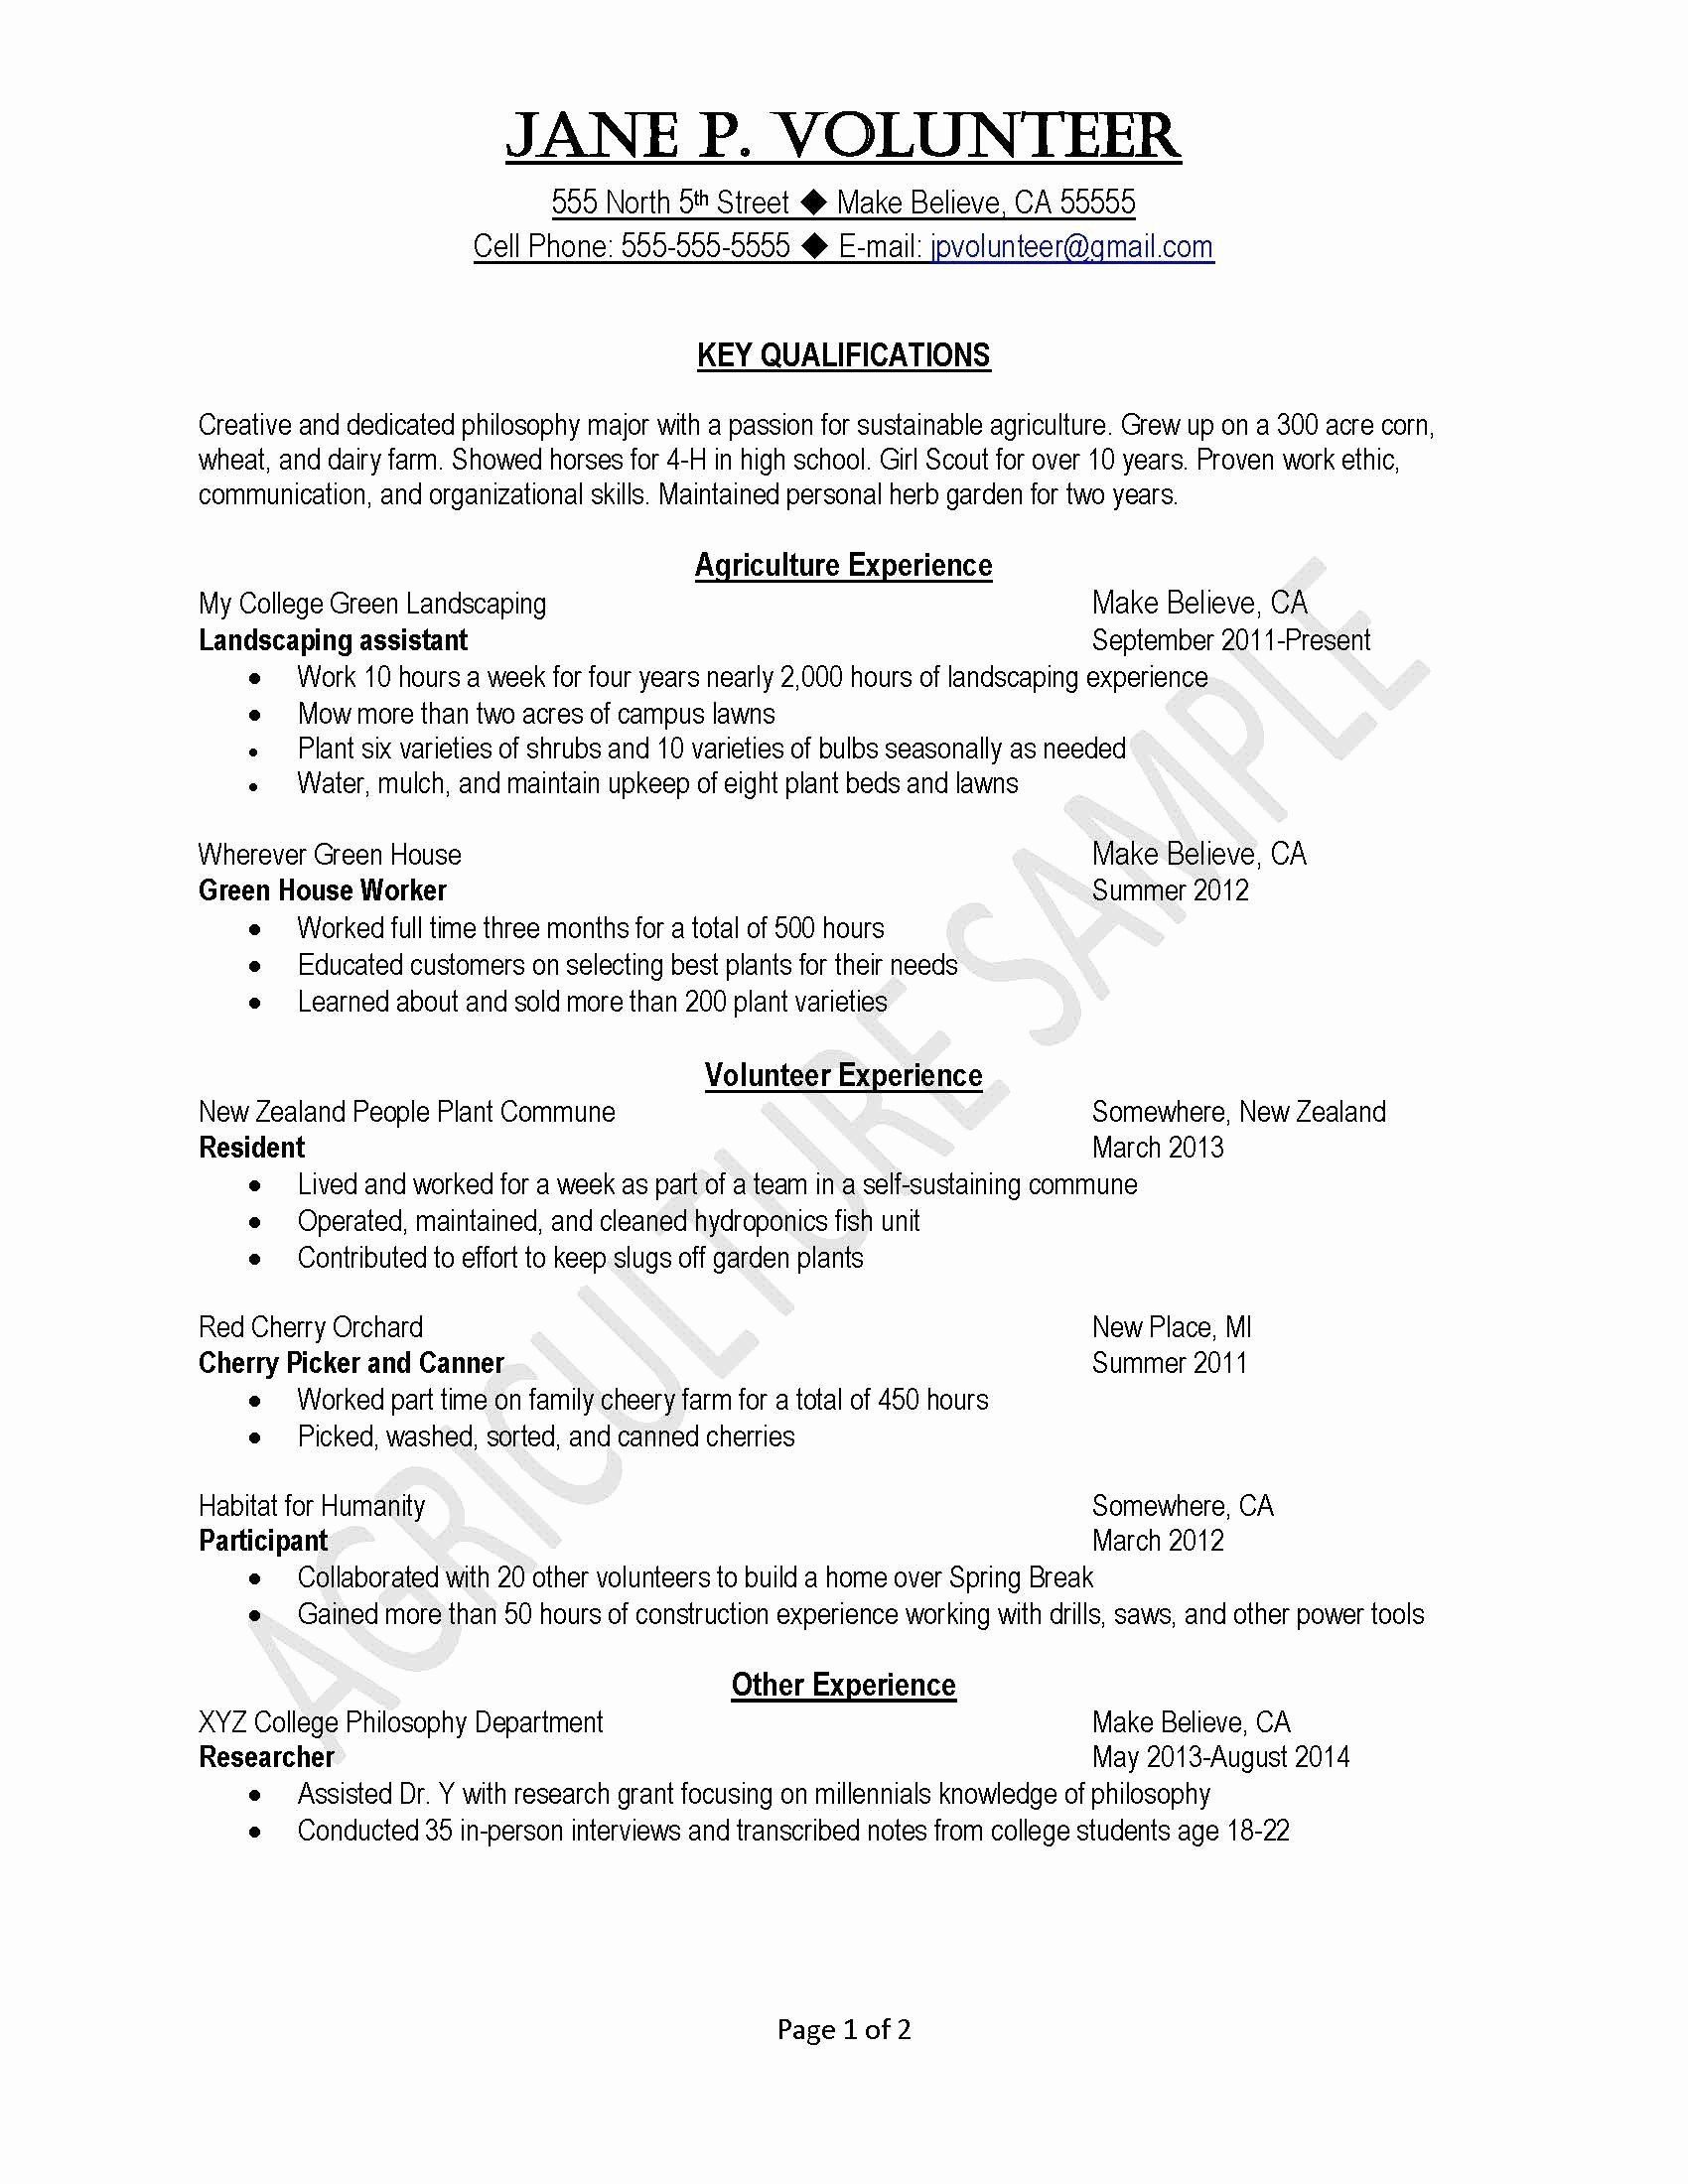 Volunteer Experience On Resume Example Elegant Resume Format Examples Karate Do Nrw De Resume Examples College Resume Template Cover Letter For Resume